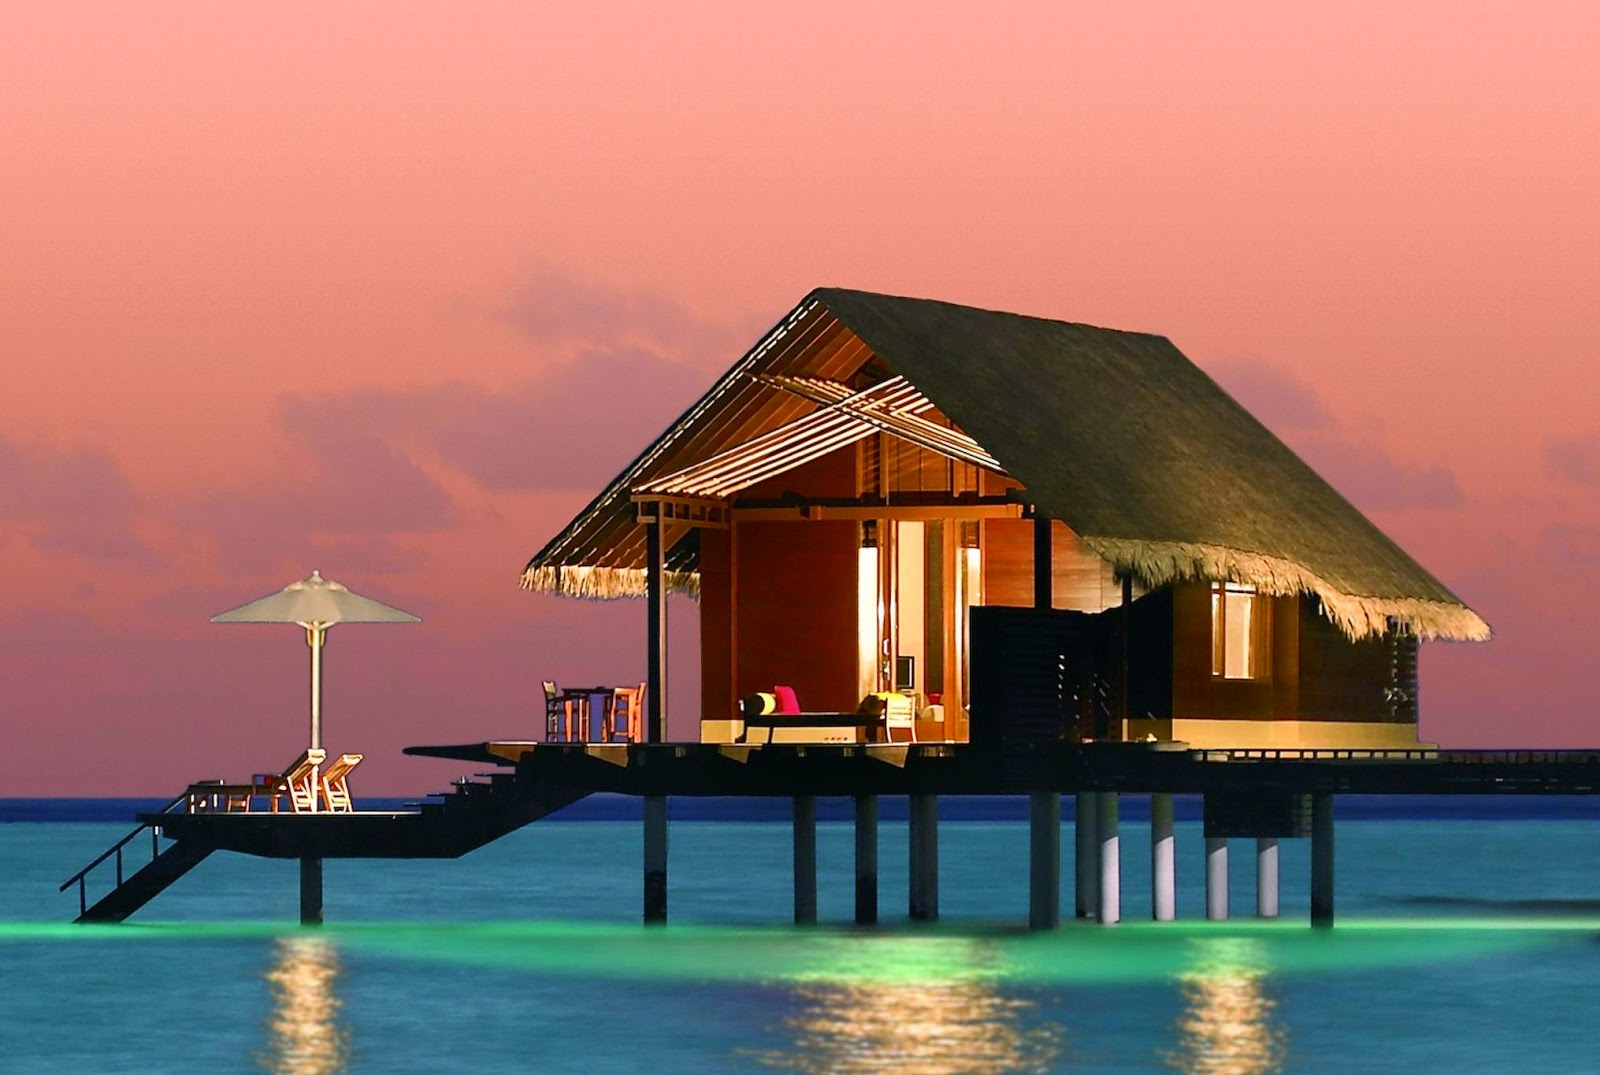 One&Only Reethi Rah Maldives Appears in Niagara Falls Review Top 10 New Year's Resolution Vacations